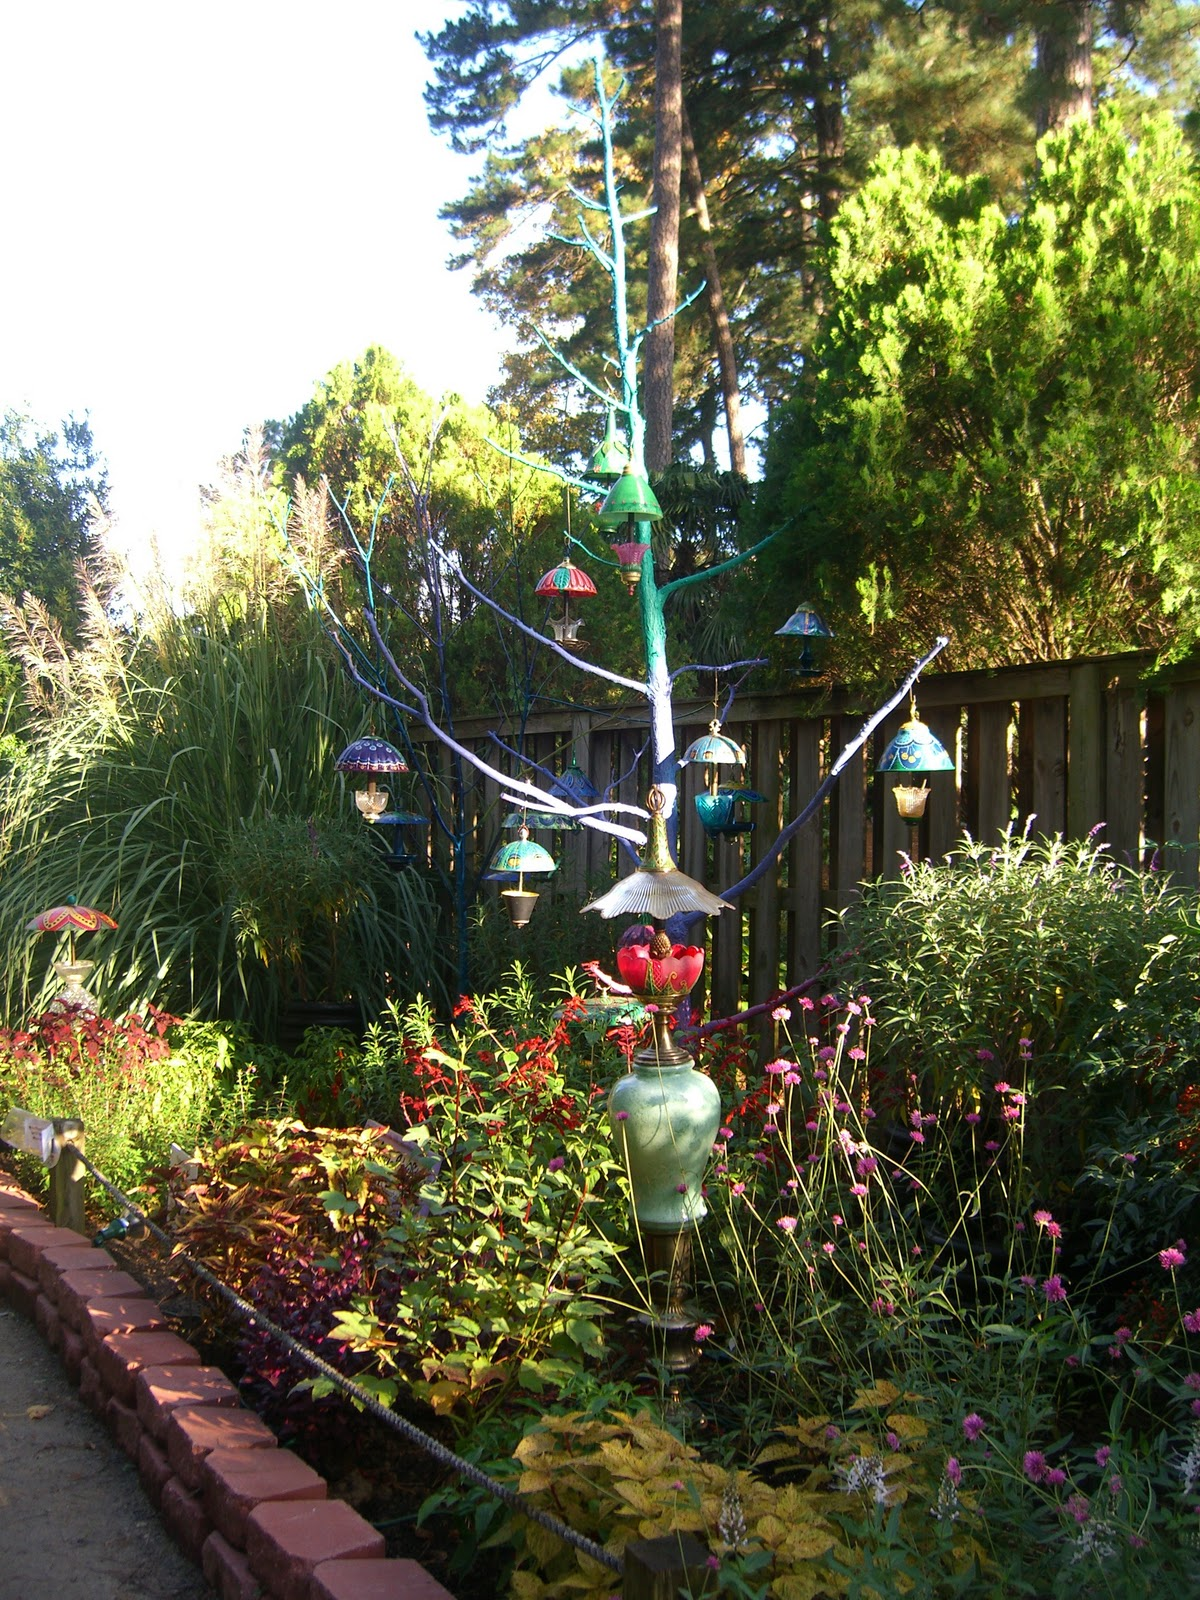 The Working Home Keeper: Garden Art Using Recycled Lamps